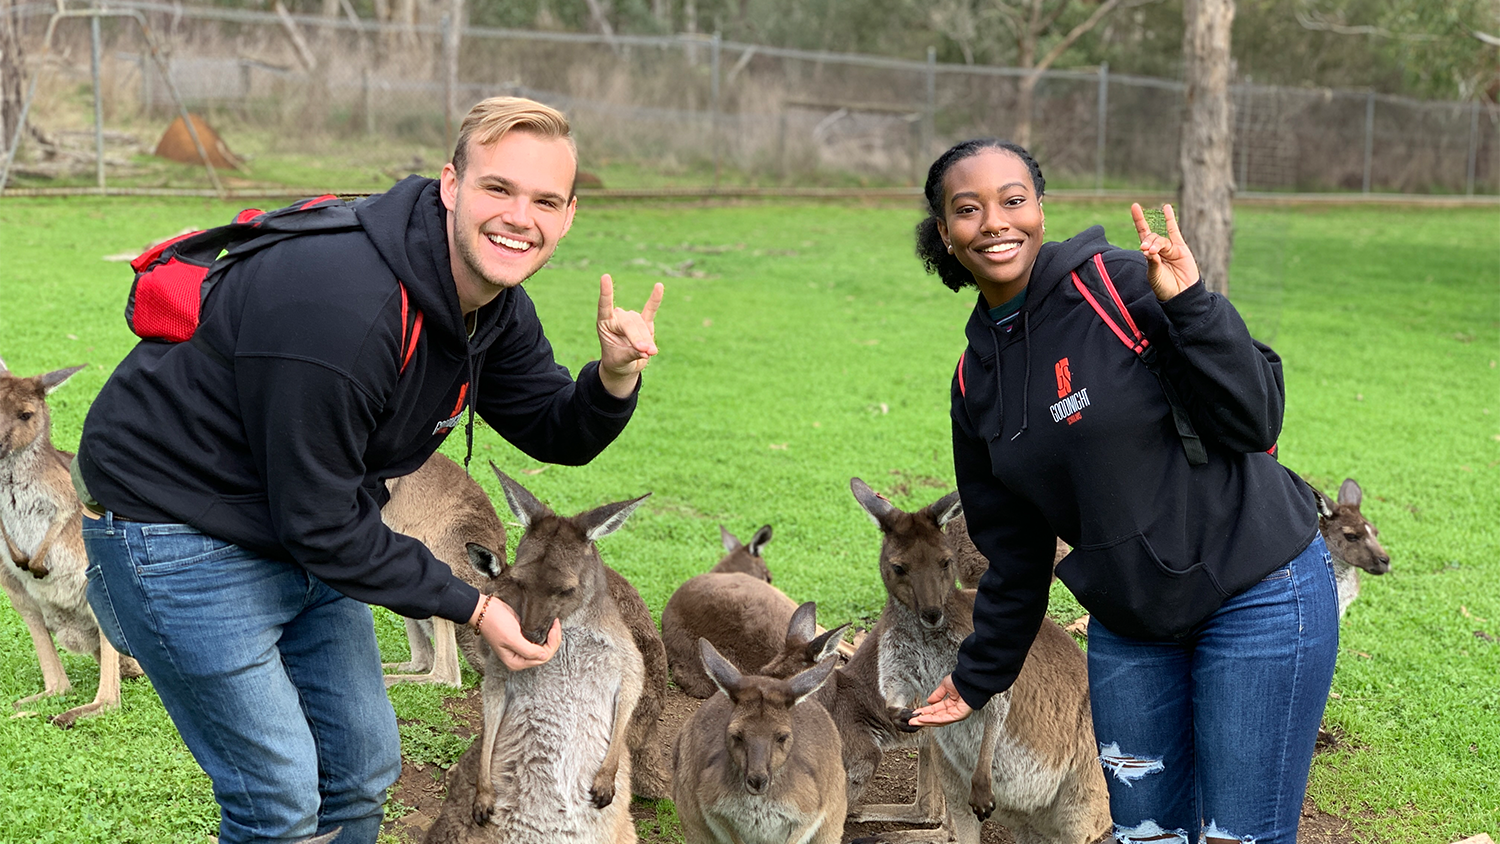 Two students are making wolfies with her hands while also petting kangaroos in Australia during their study abrod semester.